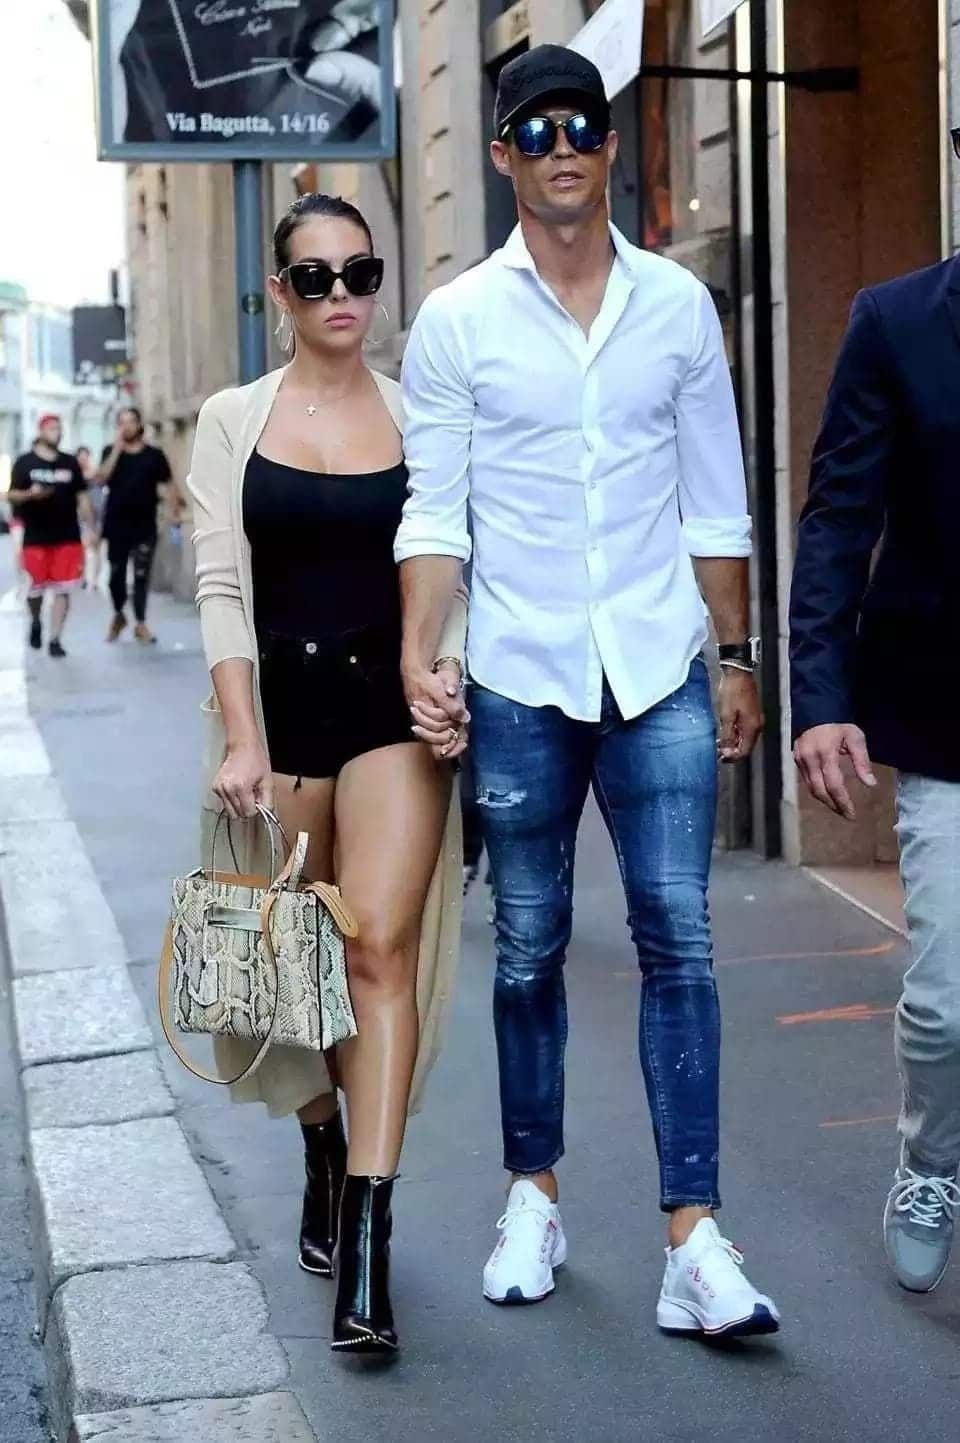 Ronaldo heads out with girlfriend Rodriguez in Milan